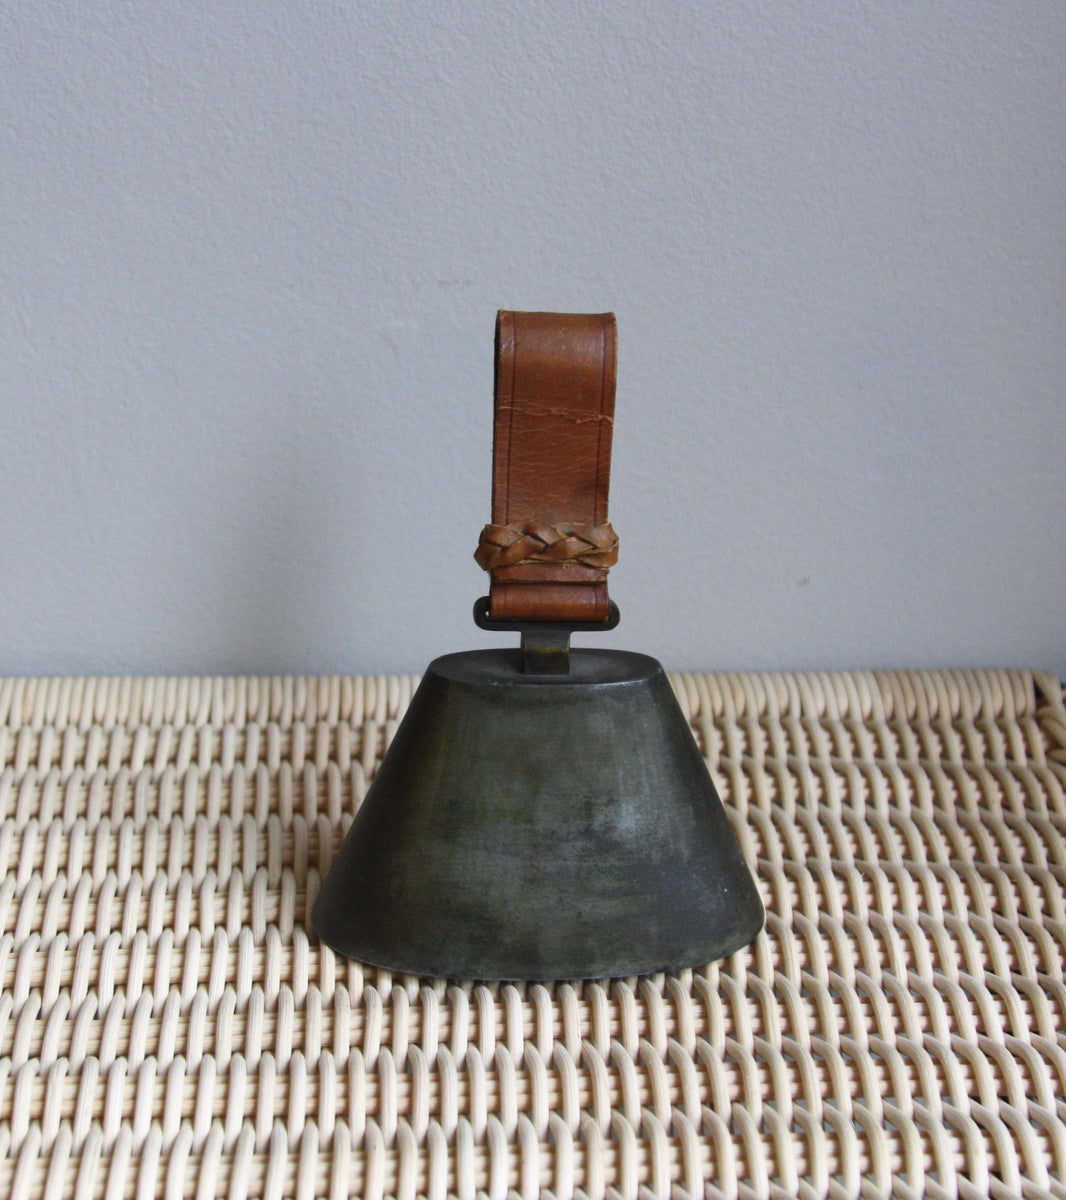 Brass Bell With Leather Handle Carl Auböck - Image 1